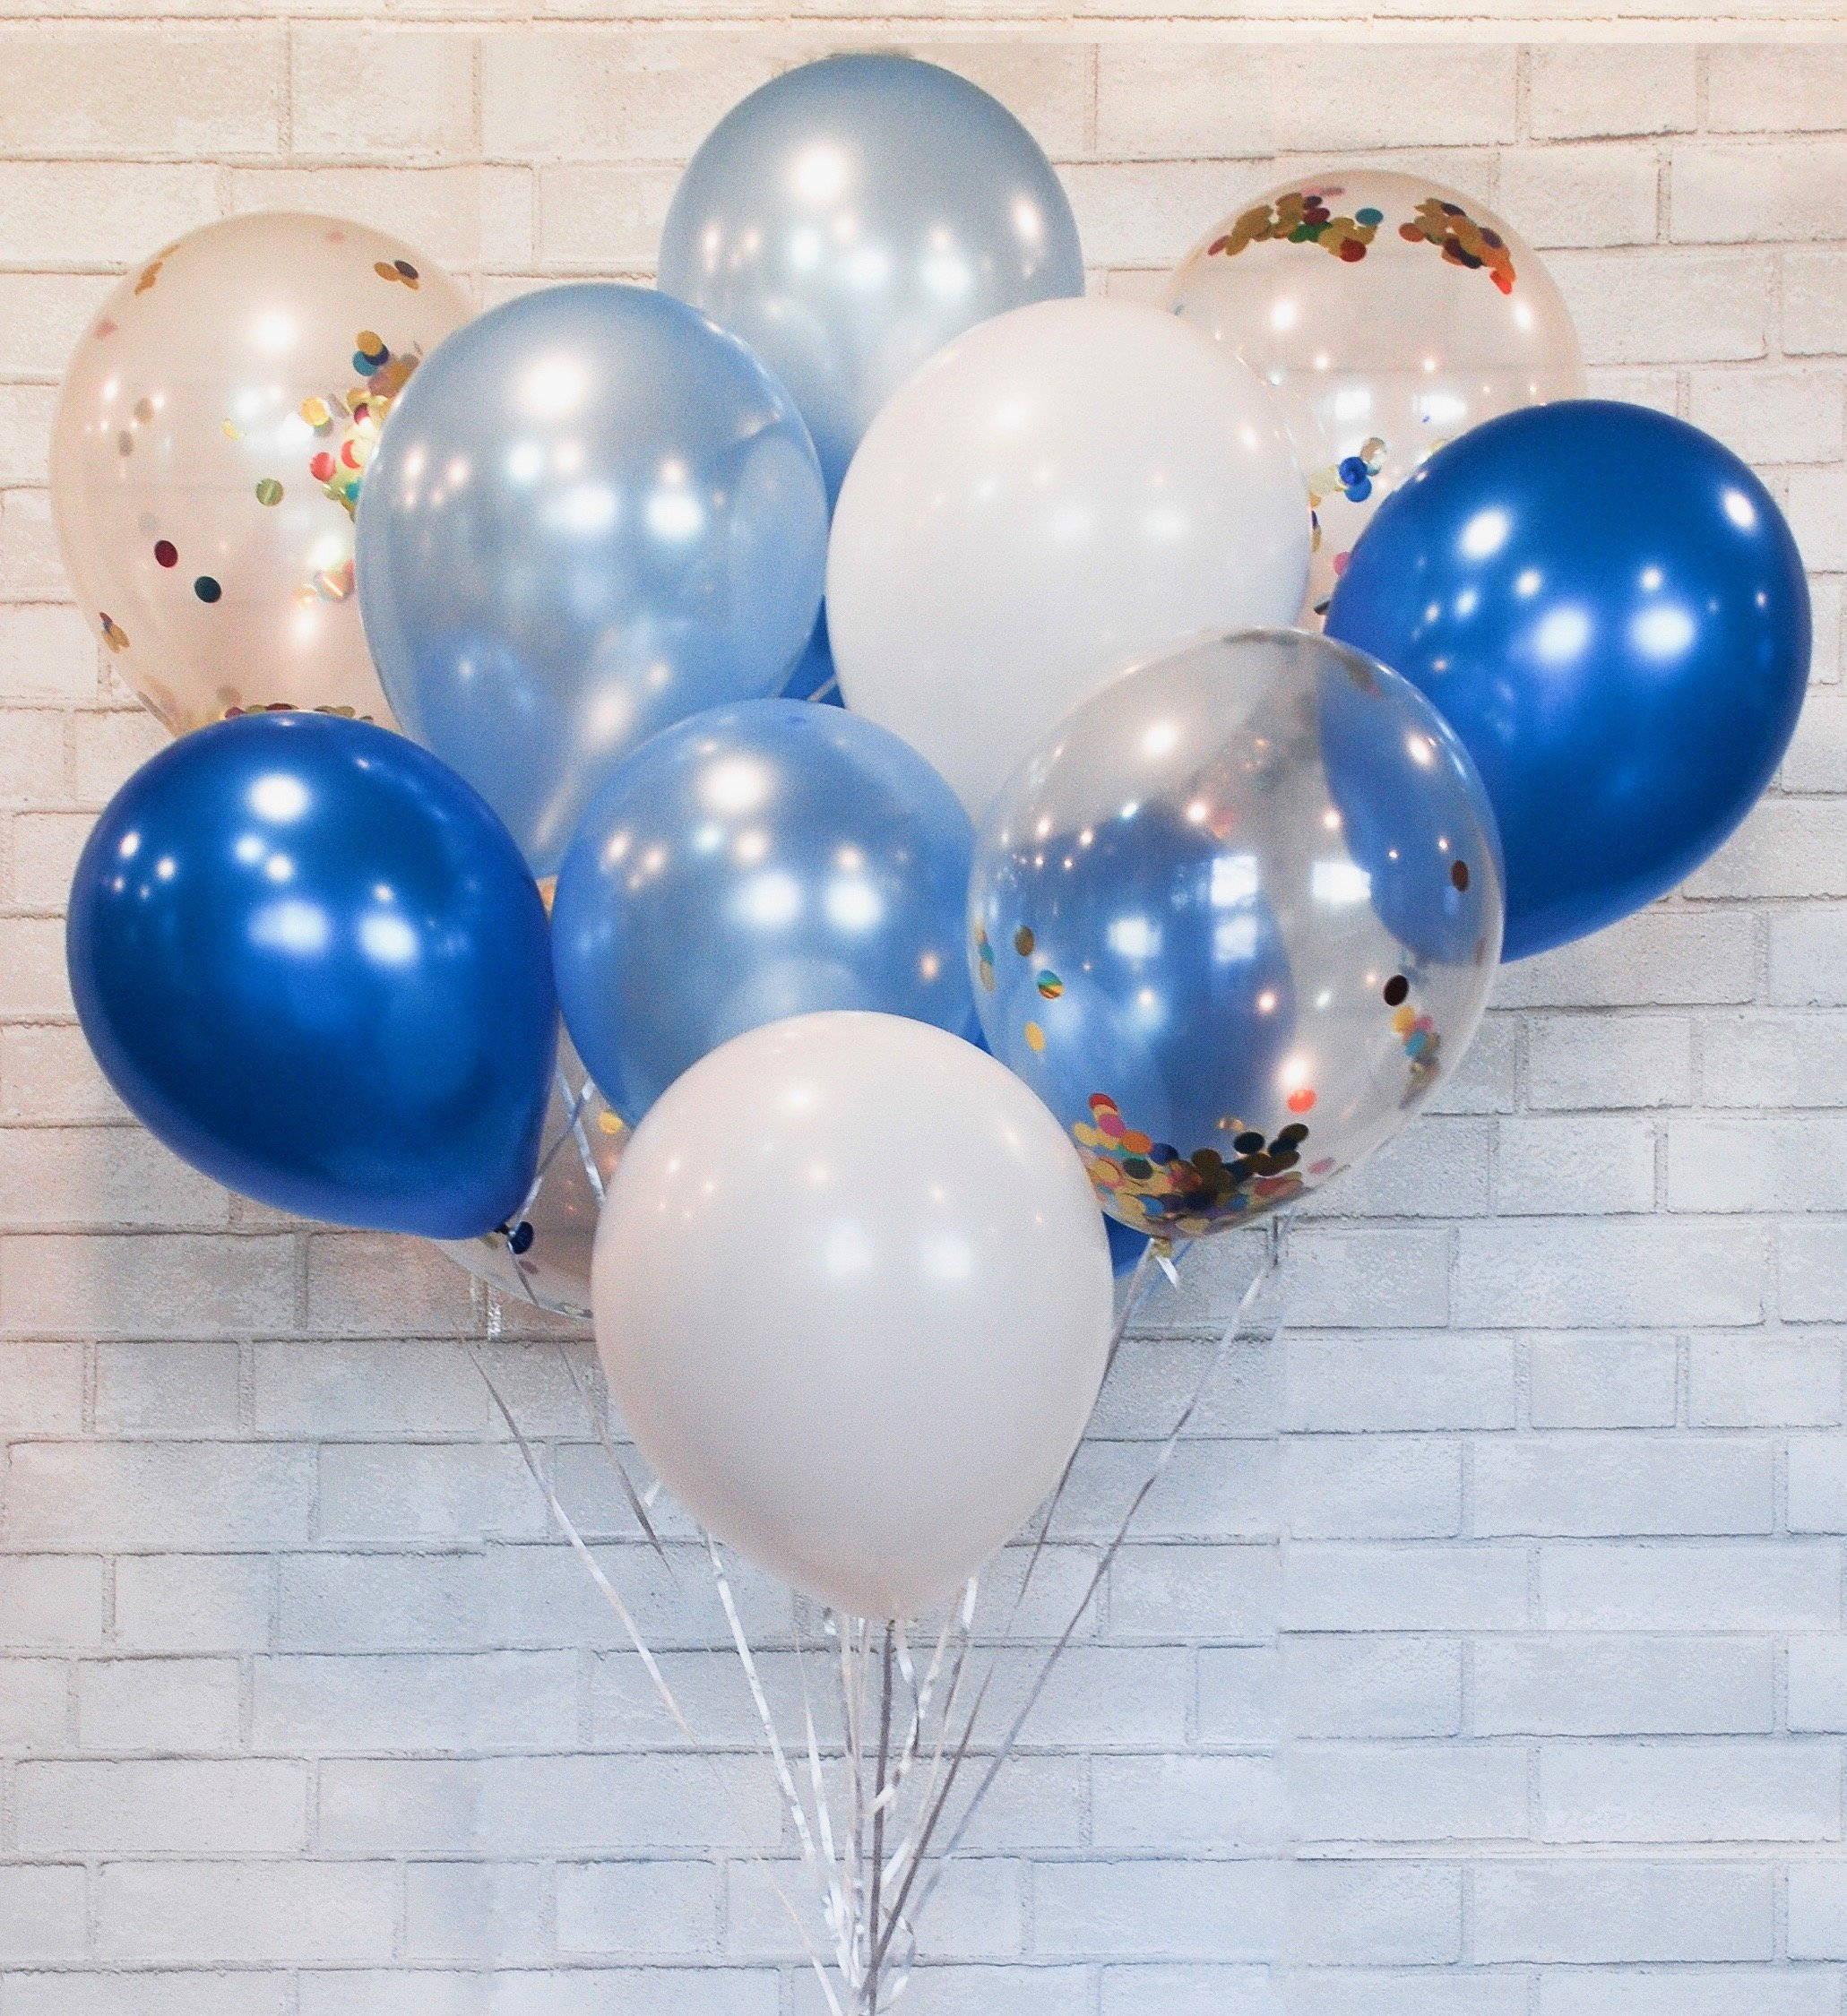 HomyBasic Confetti Balloons 12'' Lalex Blue SET 40.  Ribbon + Blow Helper. Top Quality balloon for toddler boy party, baby shower, Decoration, Supply (Blue, SkyBlue, White, Multi-color Confetti)